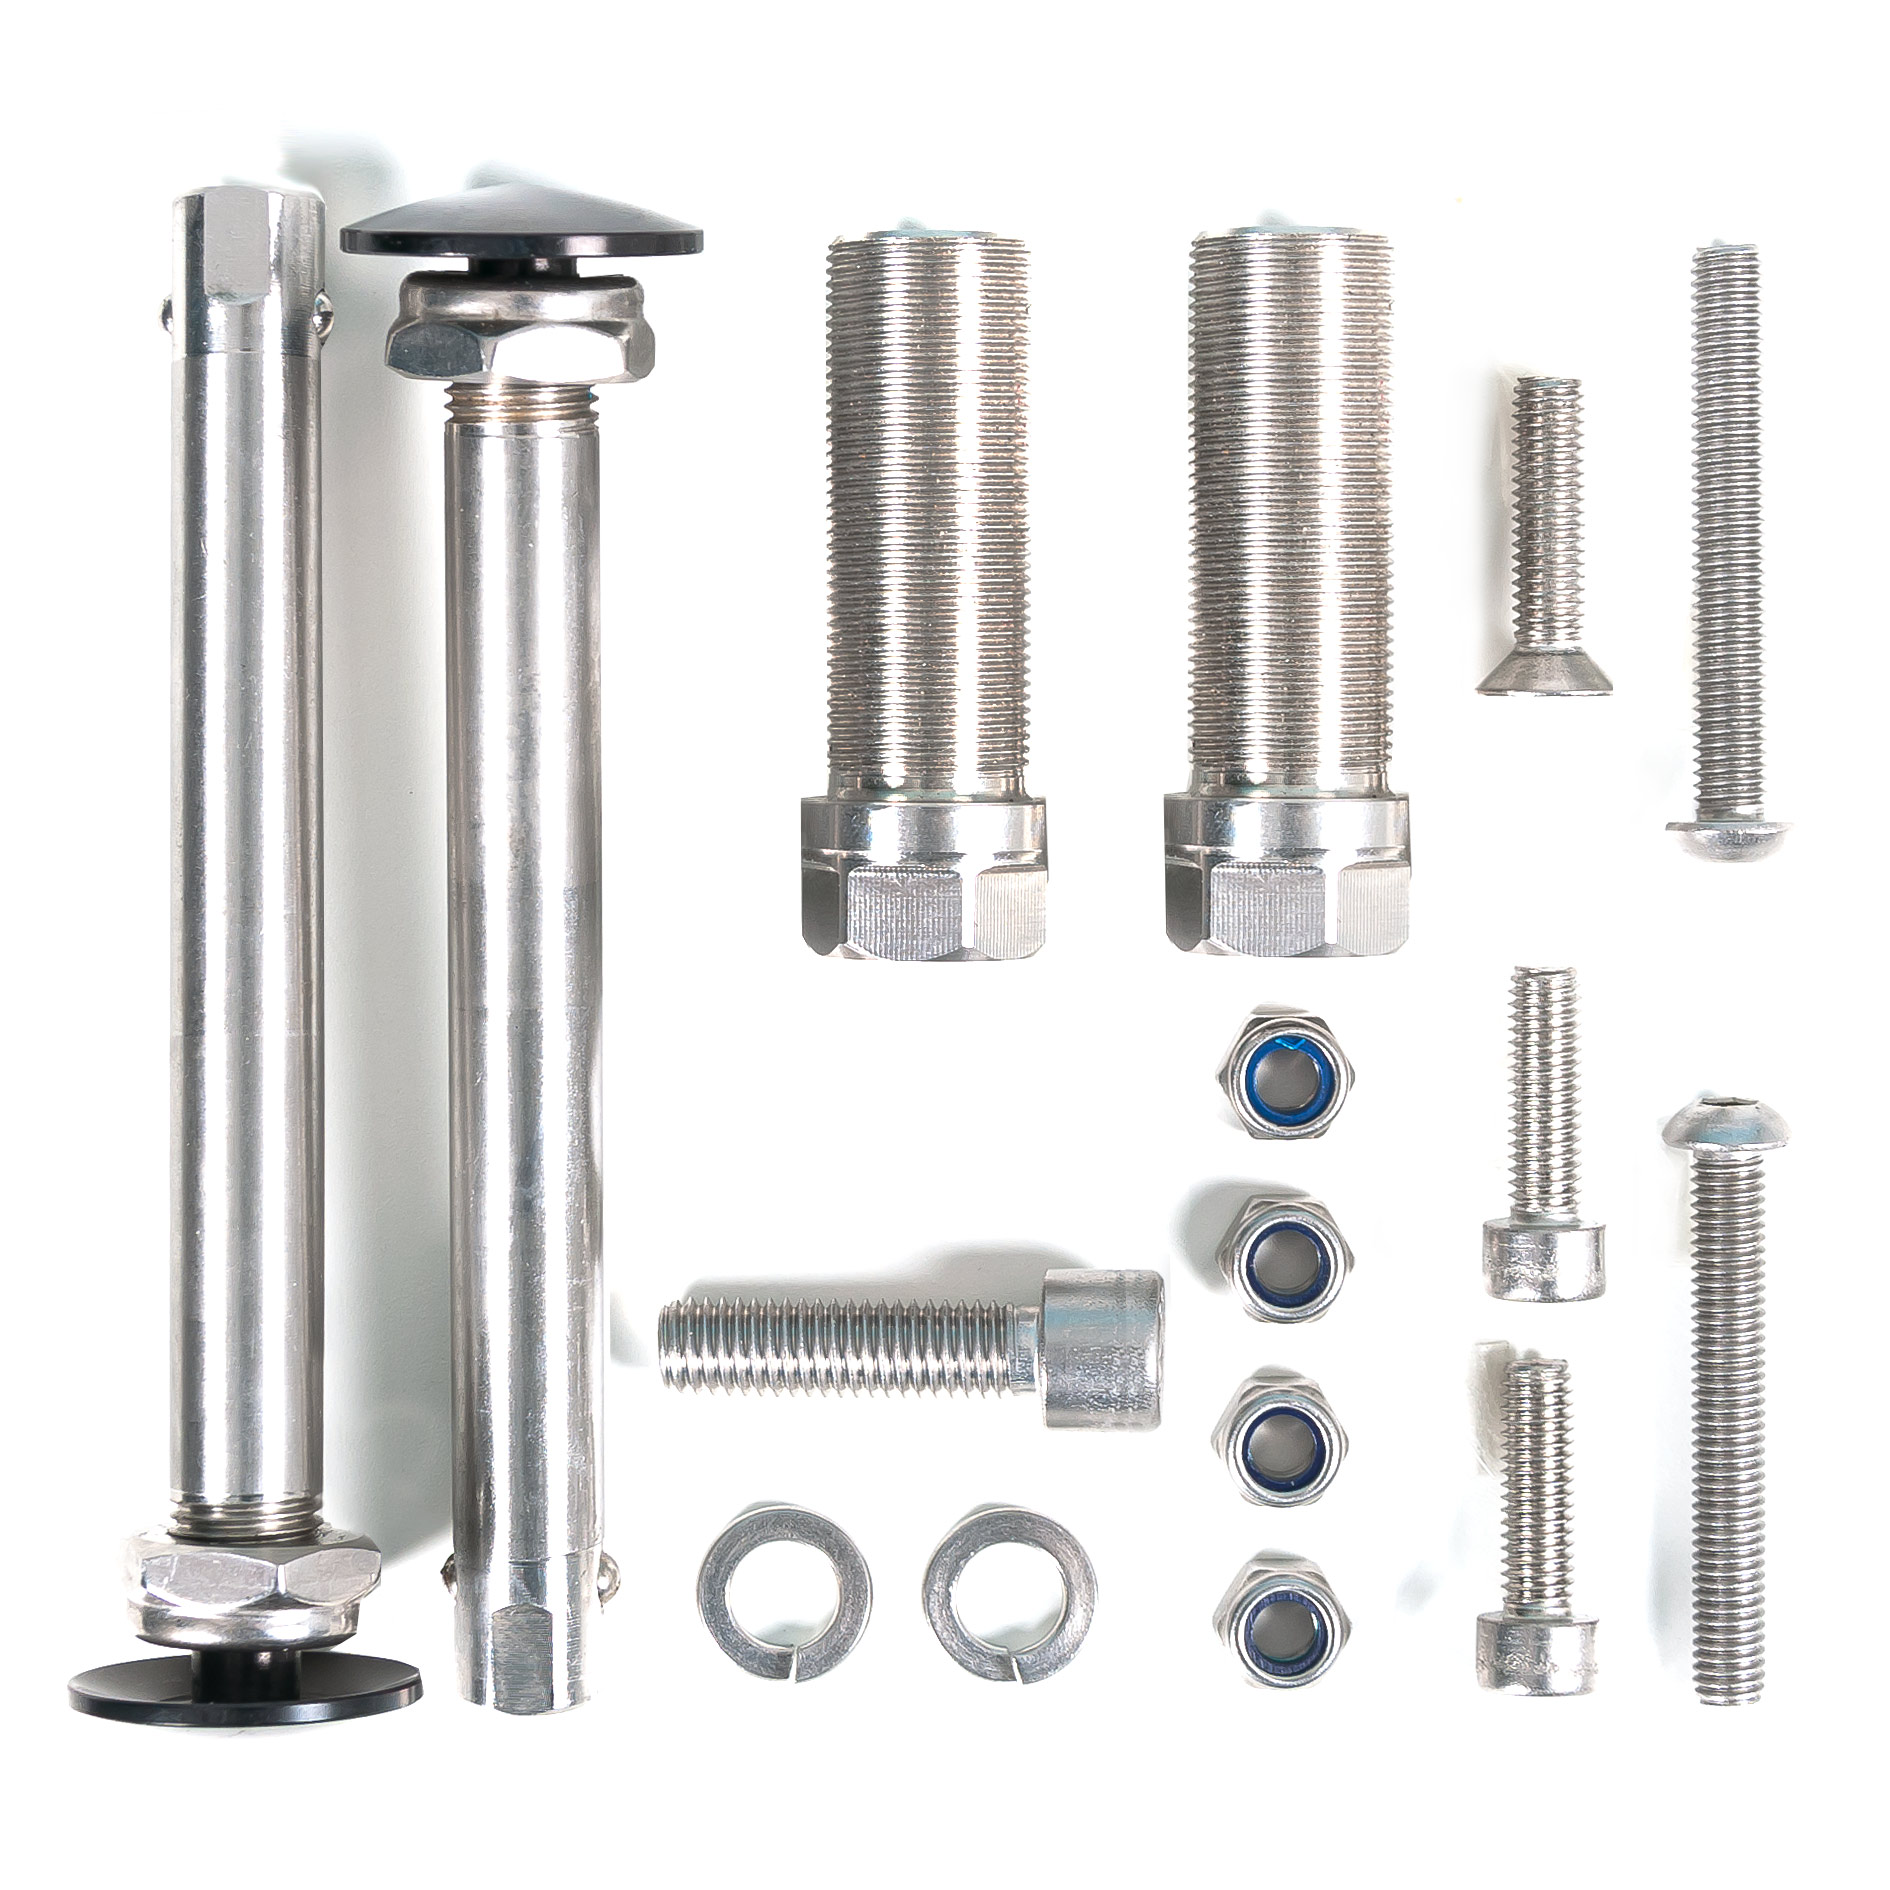 100% Stainless Steel